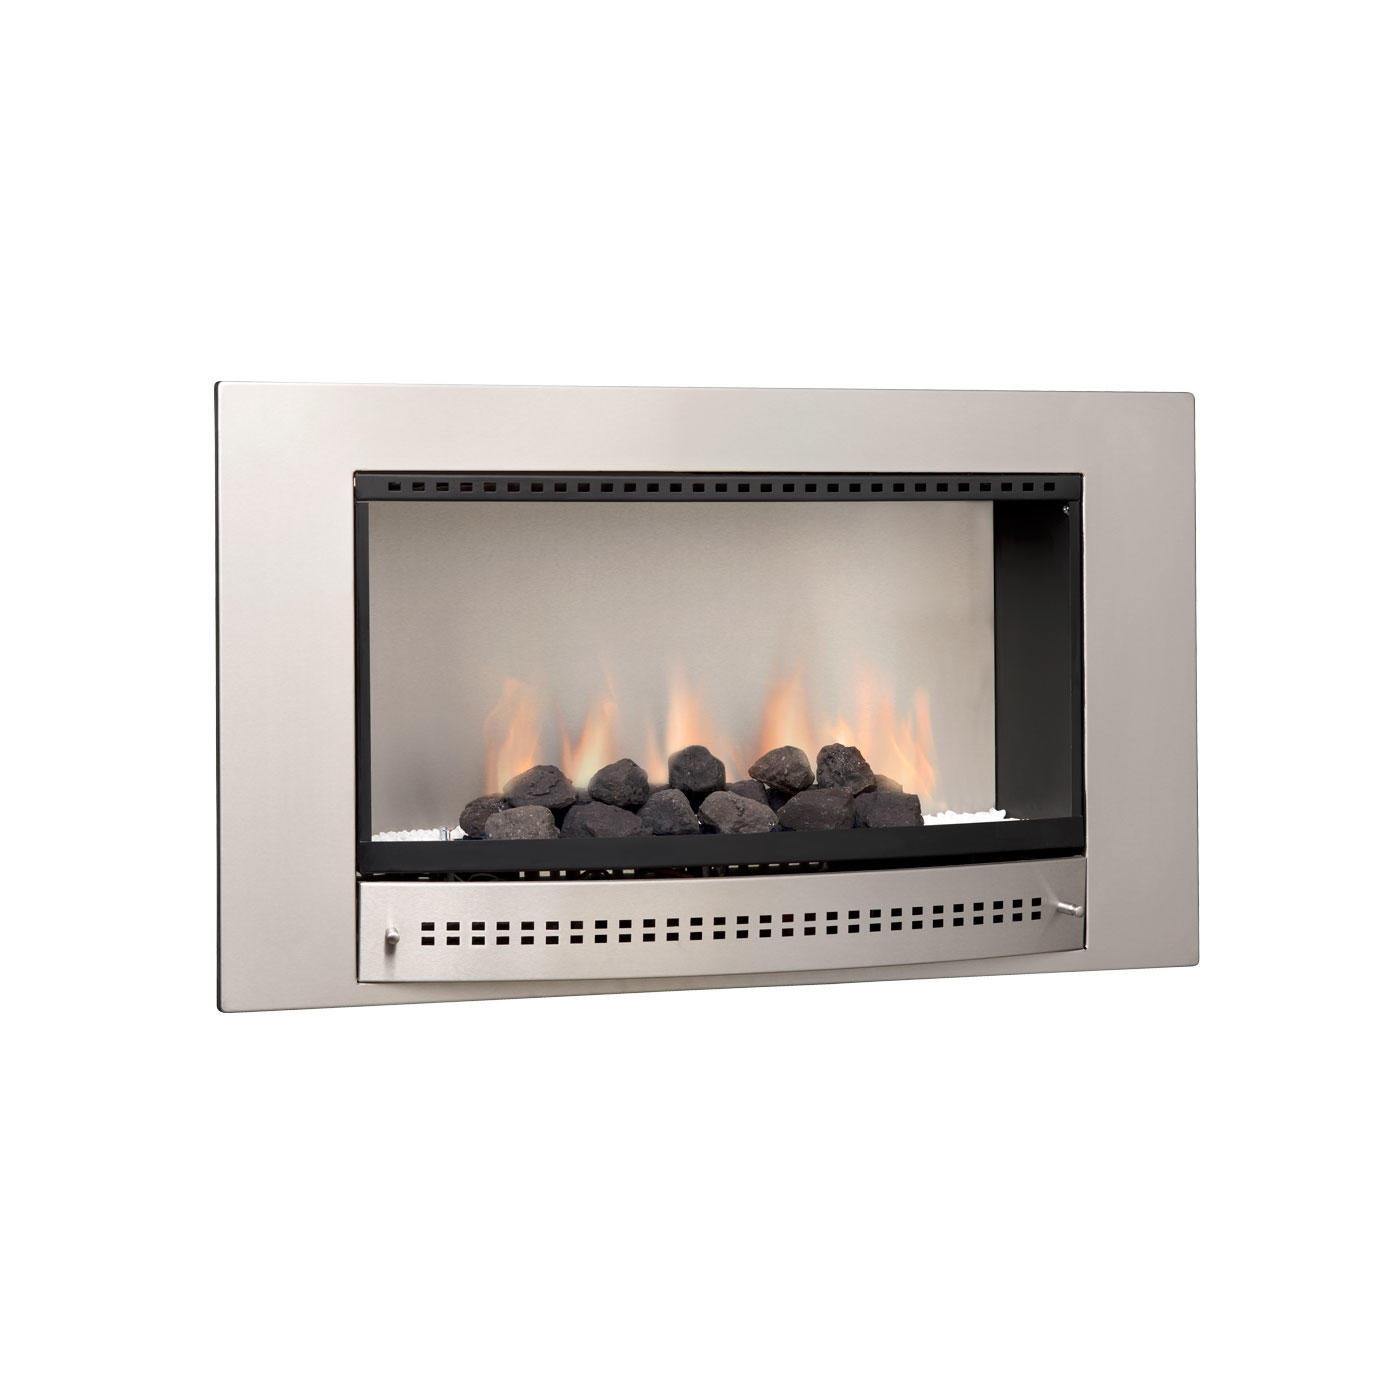 Fireplaces And Access Home Comfort Leroy Merlin South Africa